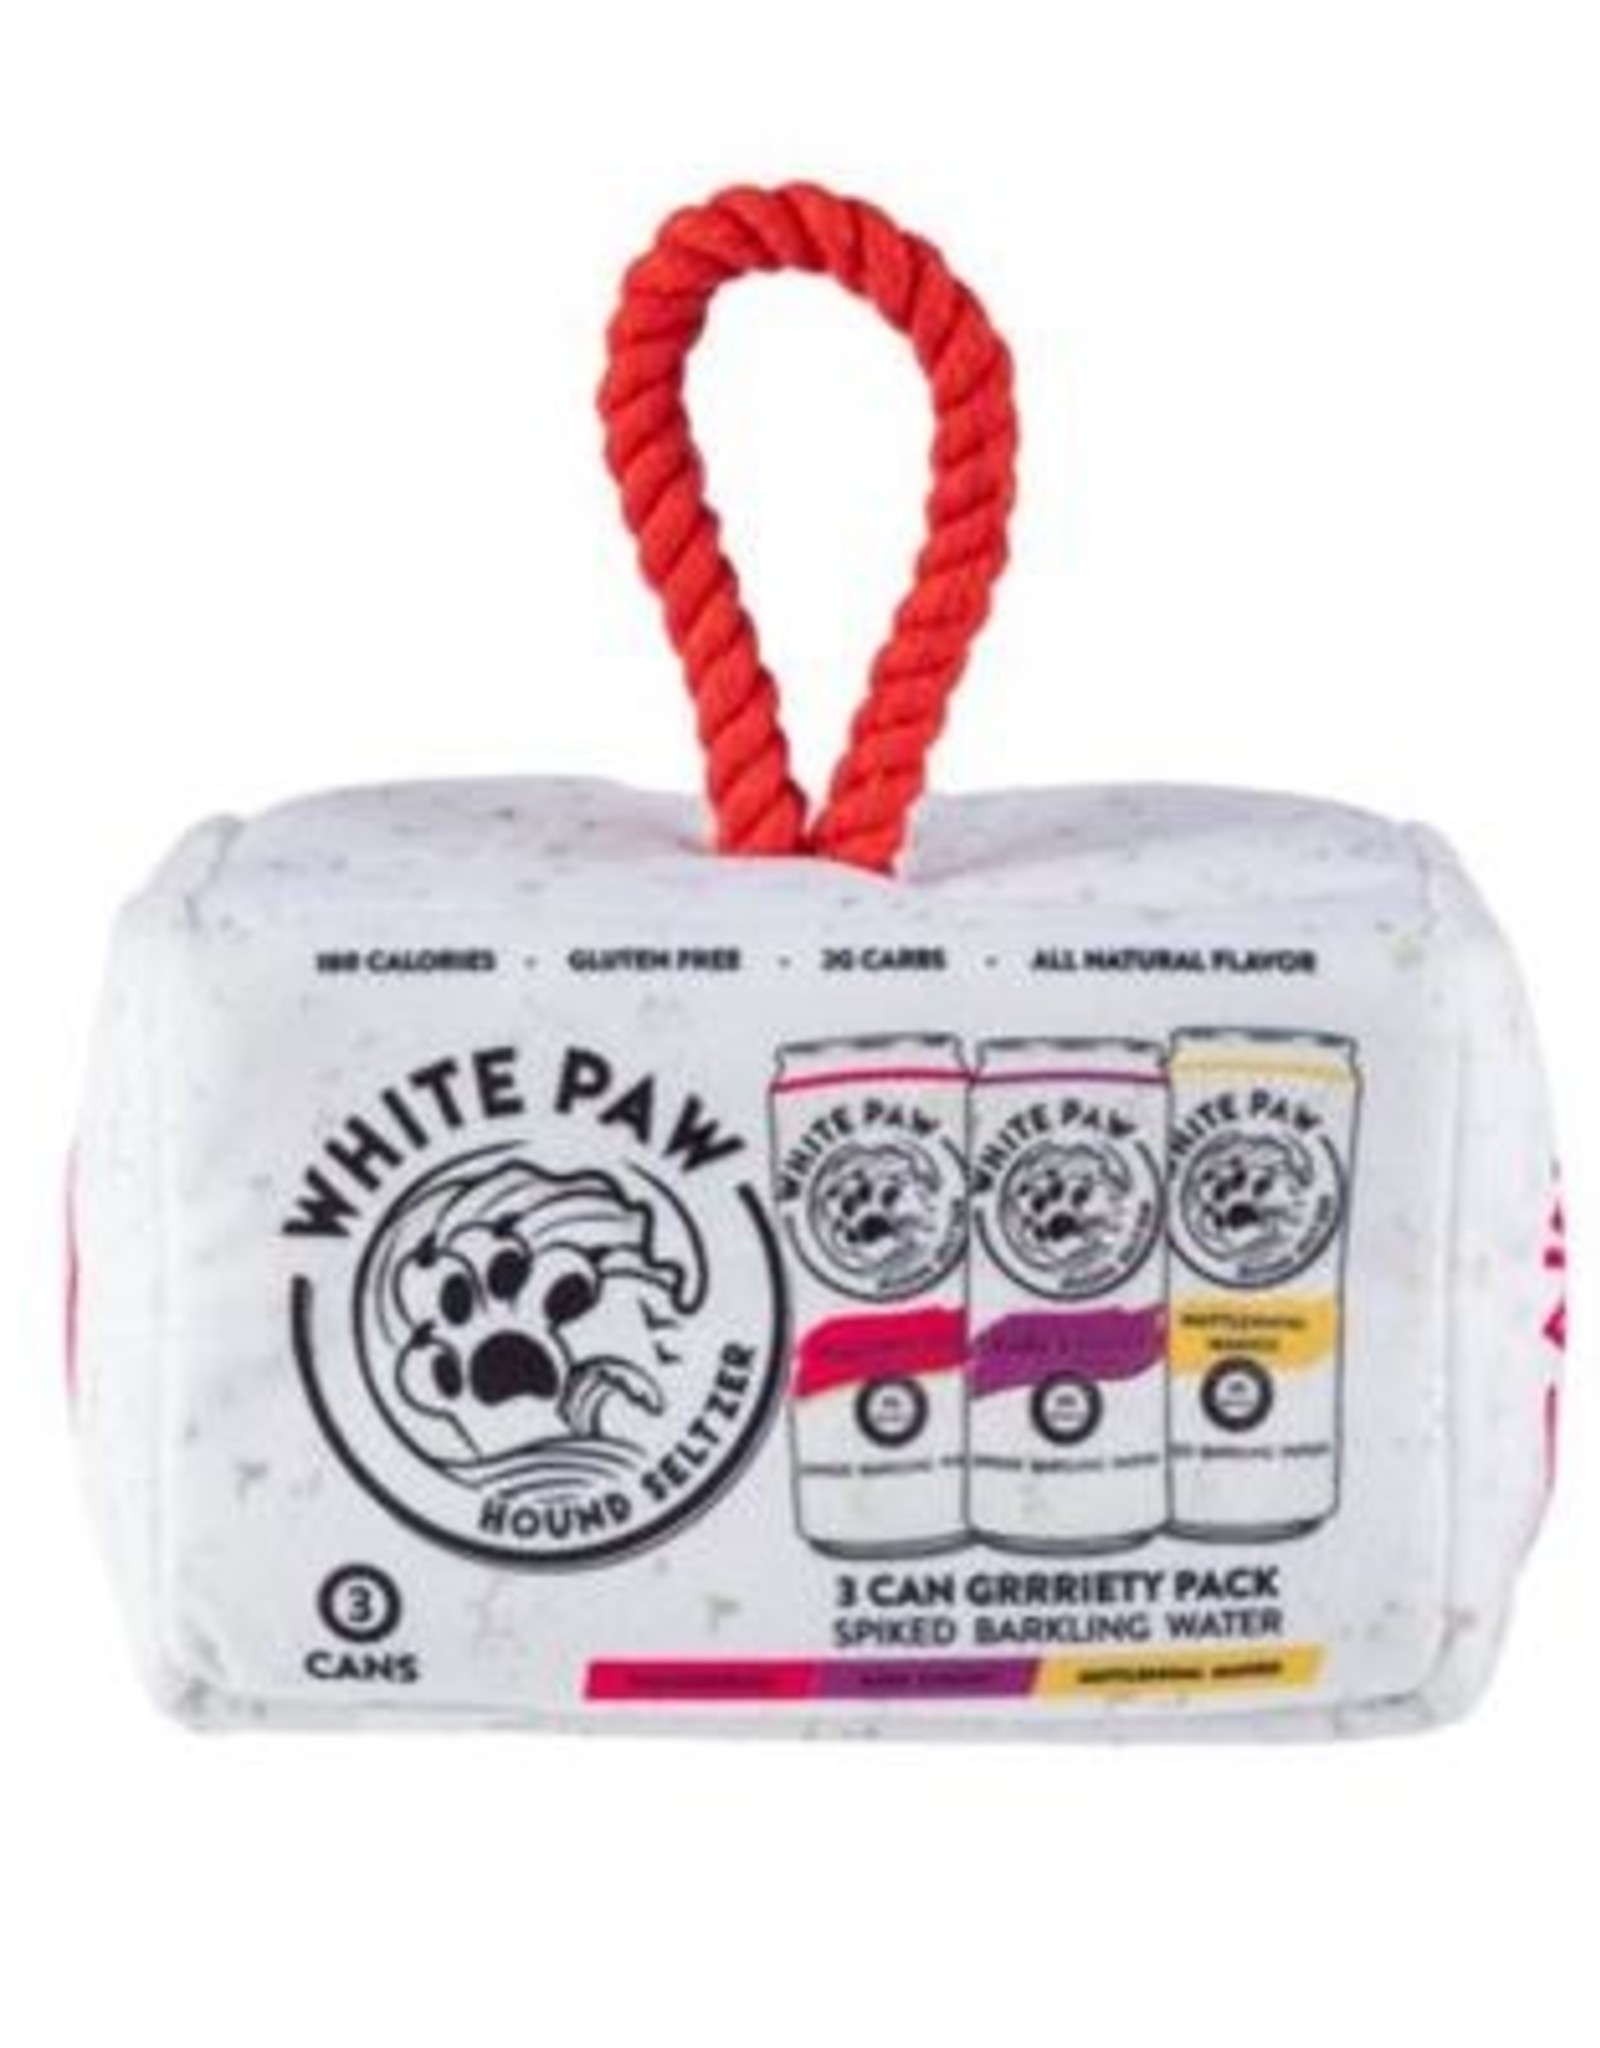 Haute Diggity Dog White Paw Grrriety Pack - Activity House